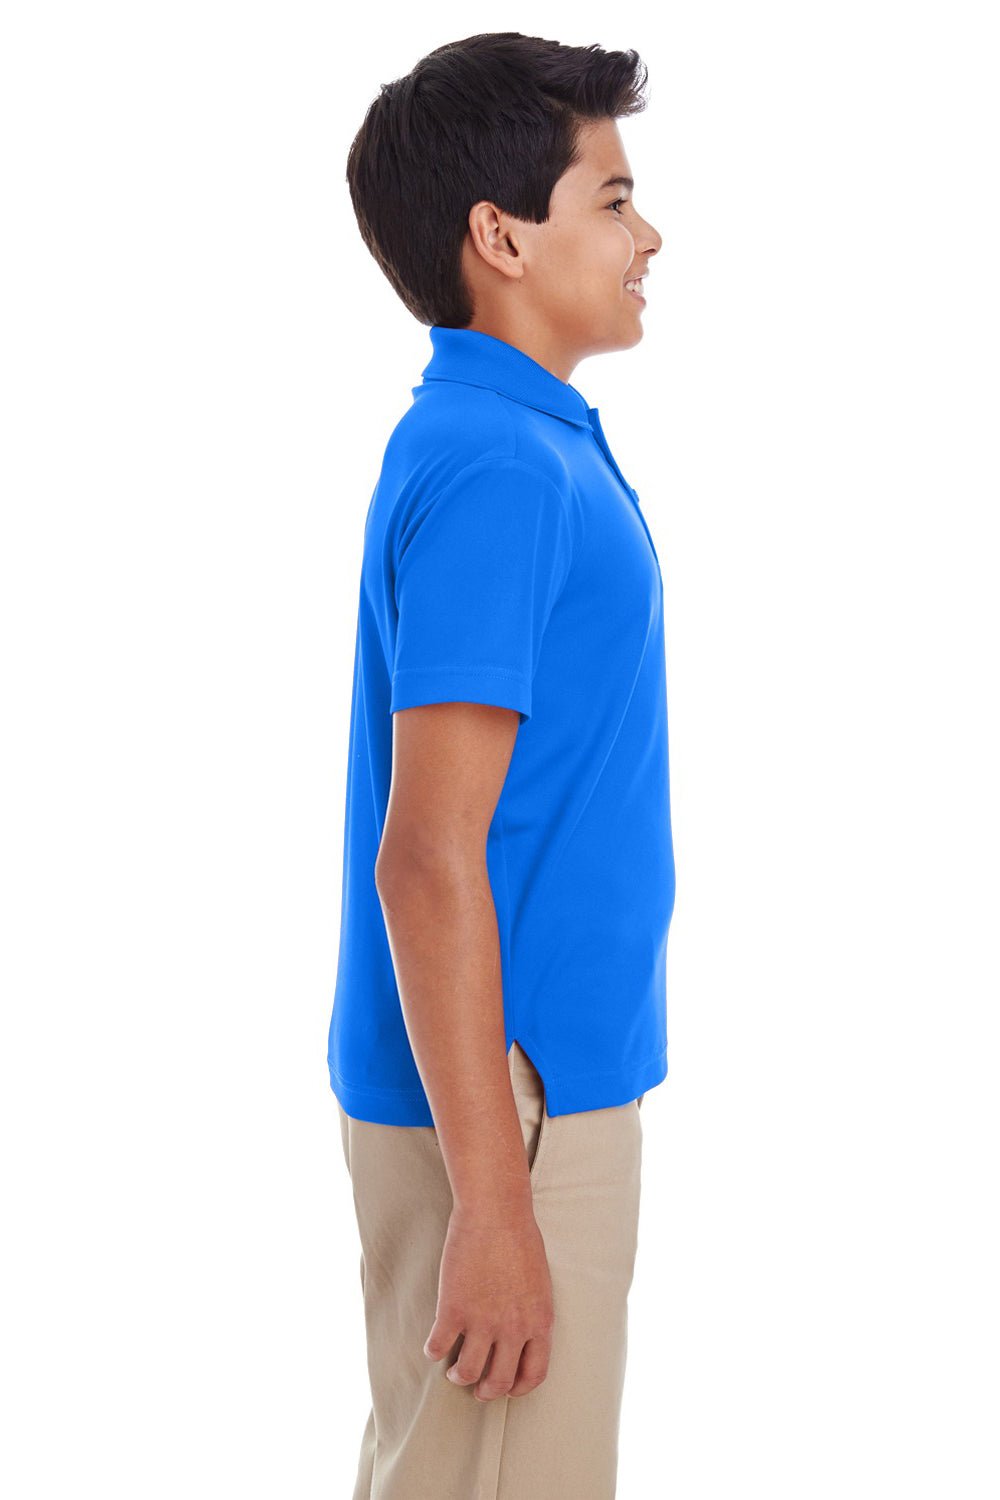 Core 365 88181Y Youth Origin Performance Moisture Wicking Short Sleeve Polo Shirt Royal Blue Side